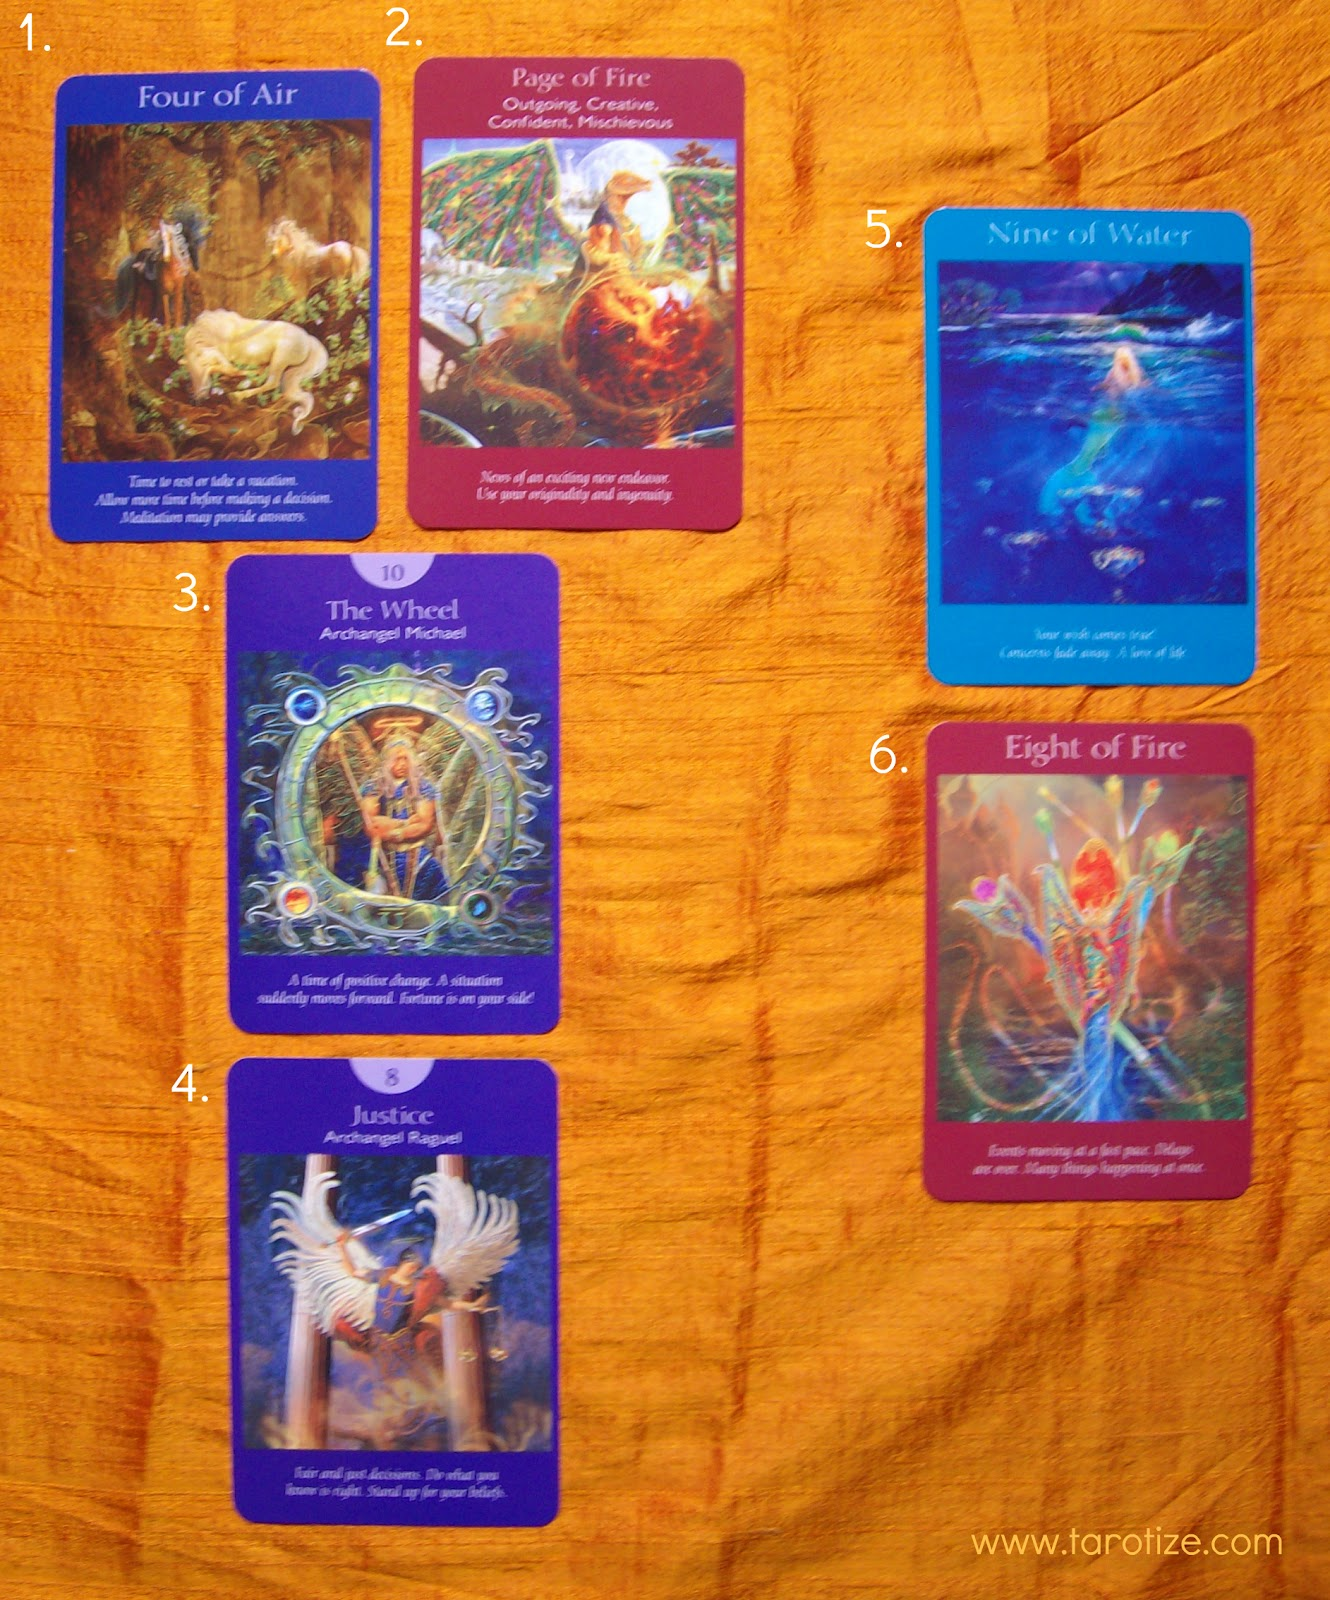 deck interview doreen virtue s angel tarot angelorum describe yourself in three words 4 of air swords peaceful gentle soothing i make a great deck for your daily meditative focus